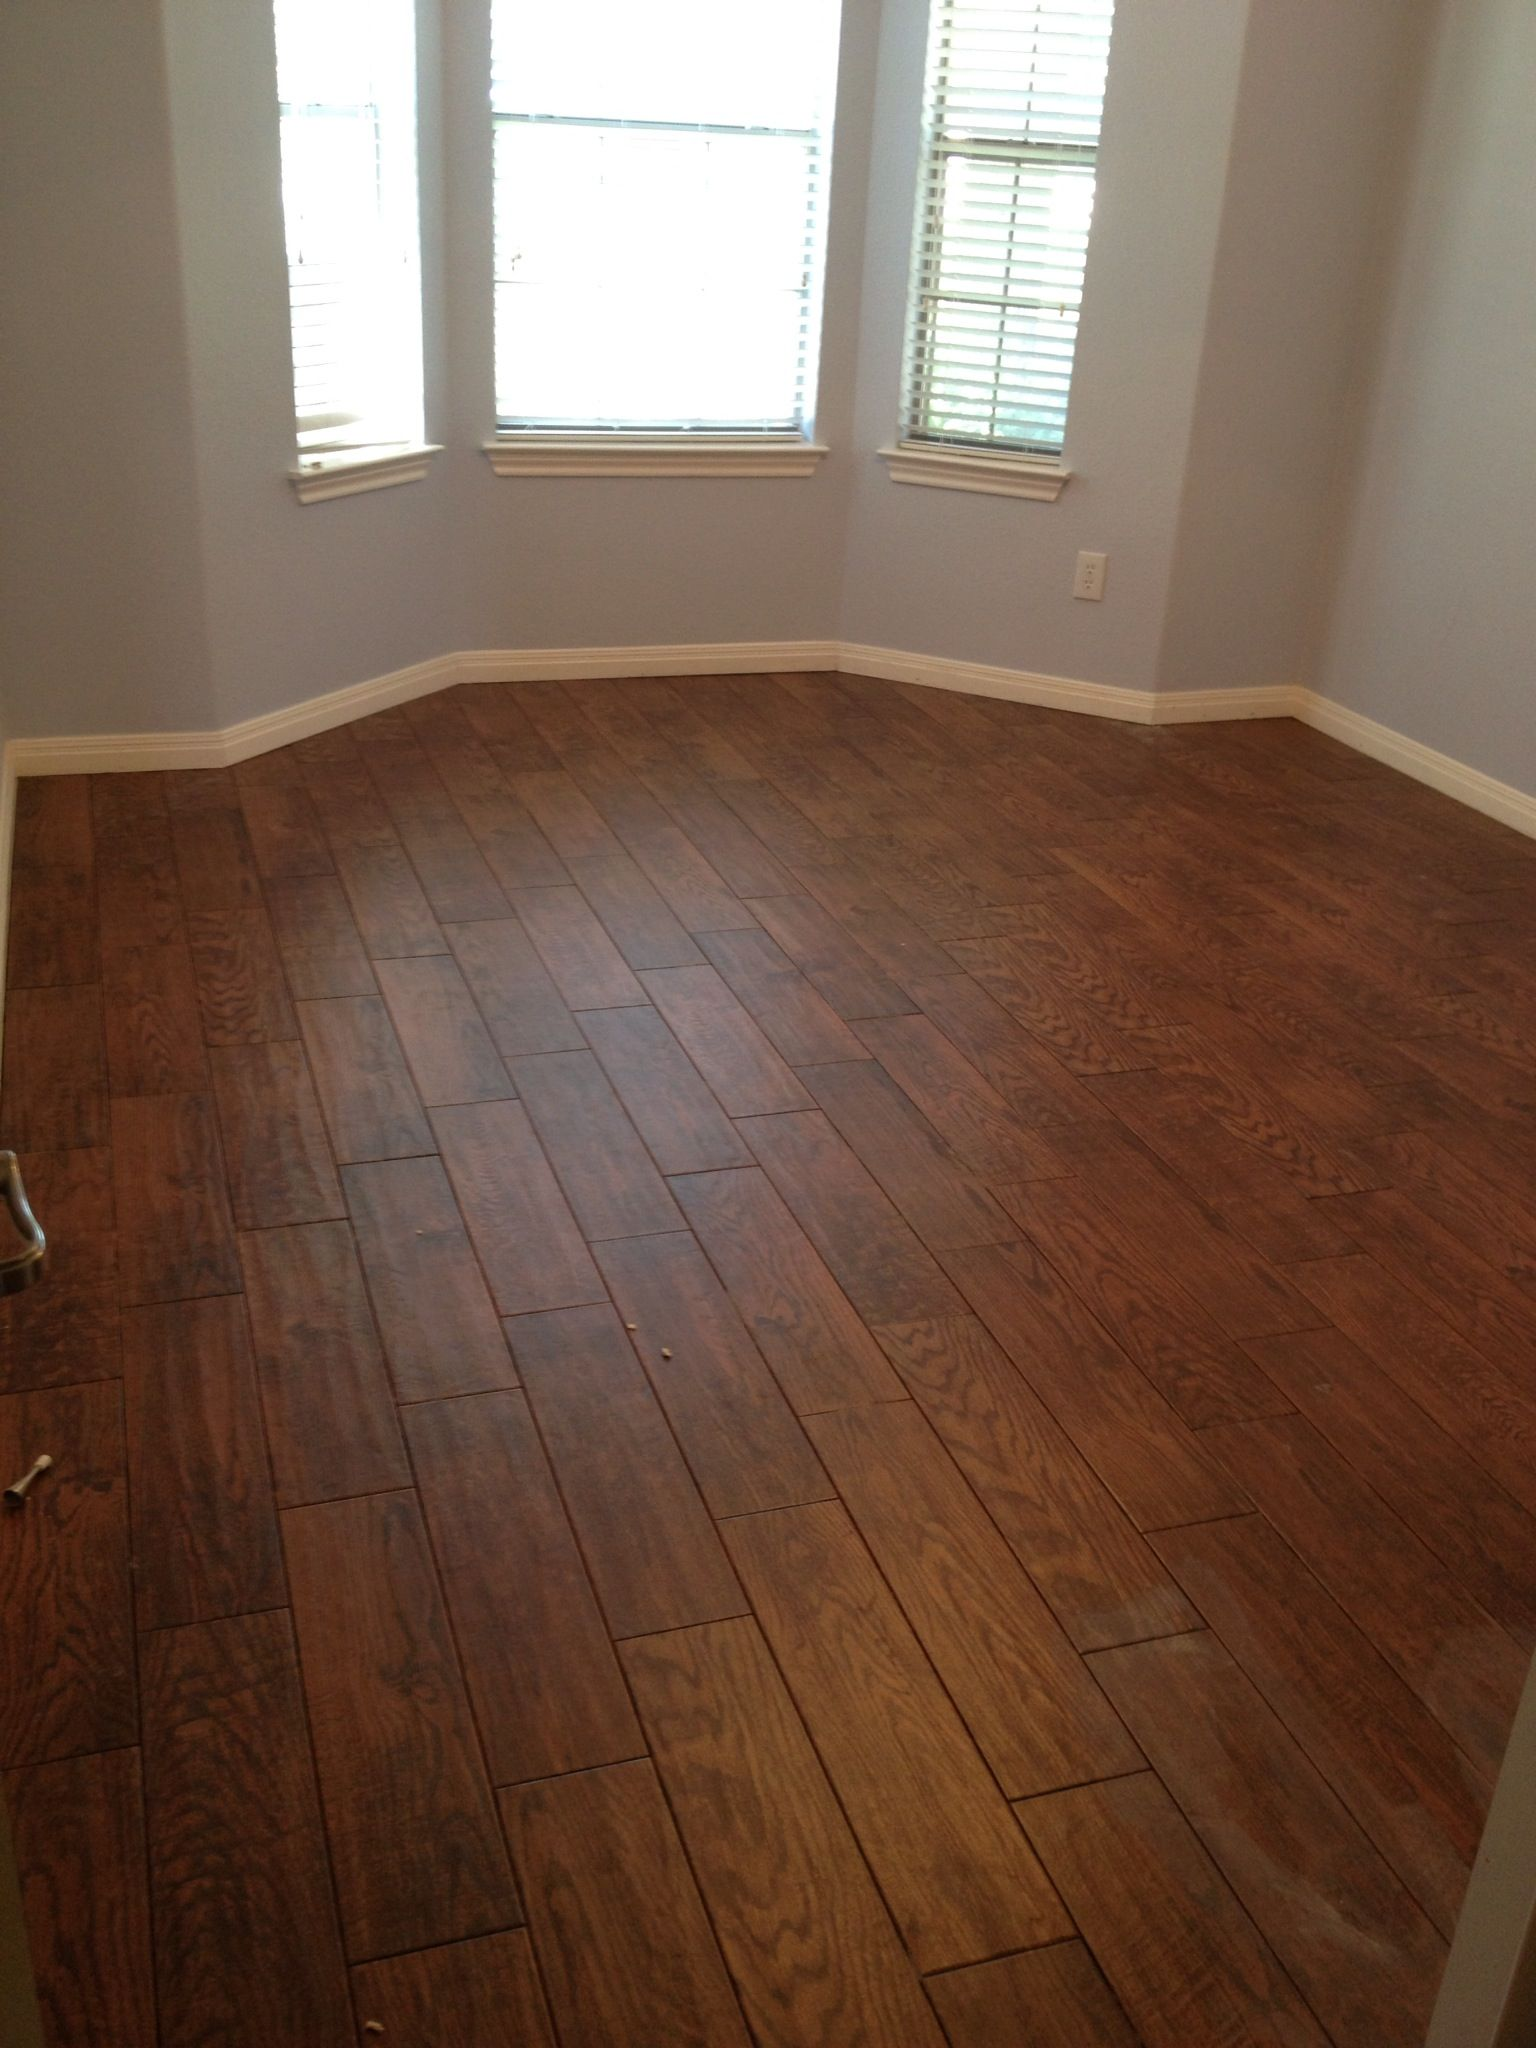 Kitchen Flooring Advice Tile That Looks Like Wood Love The Durability Home Flooding